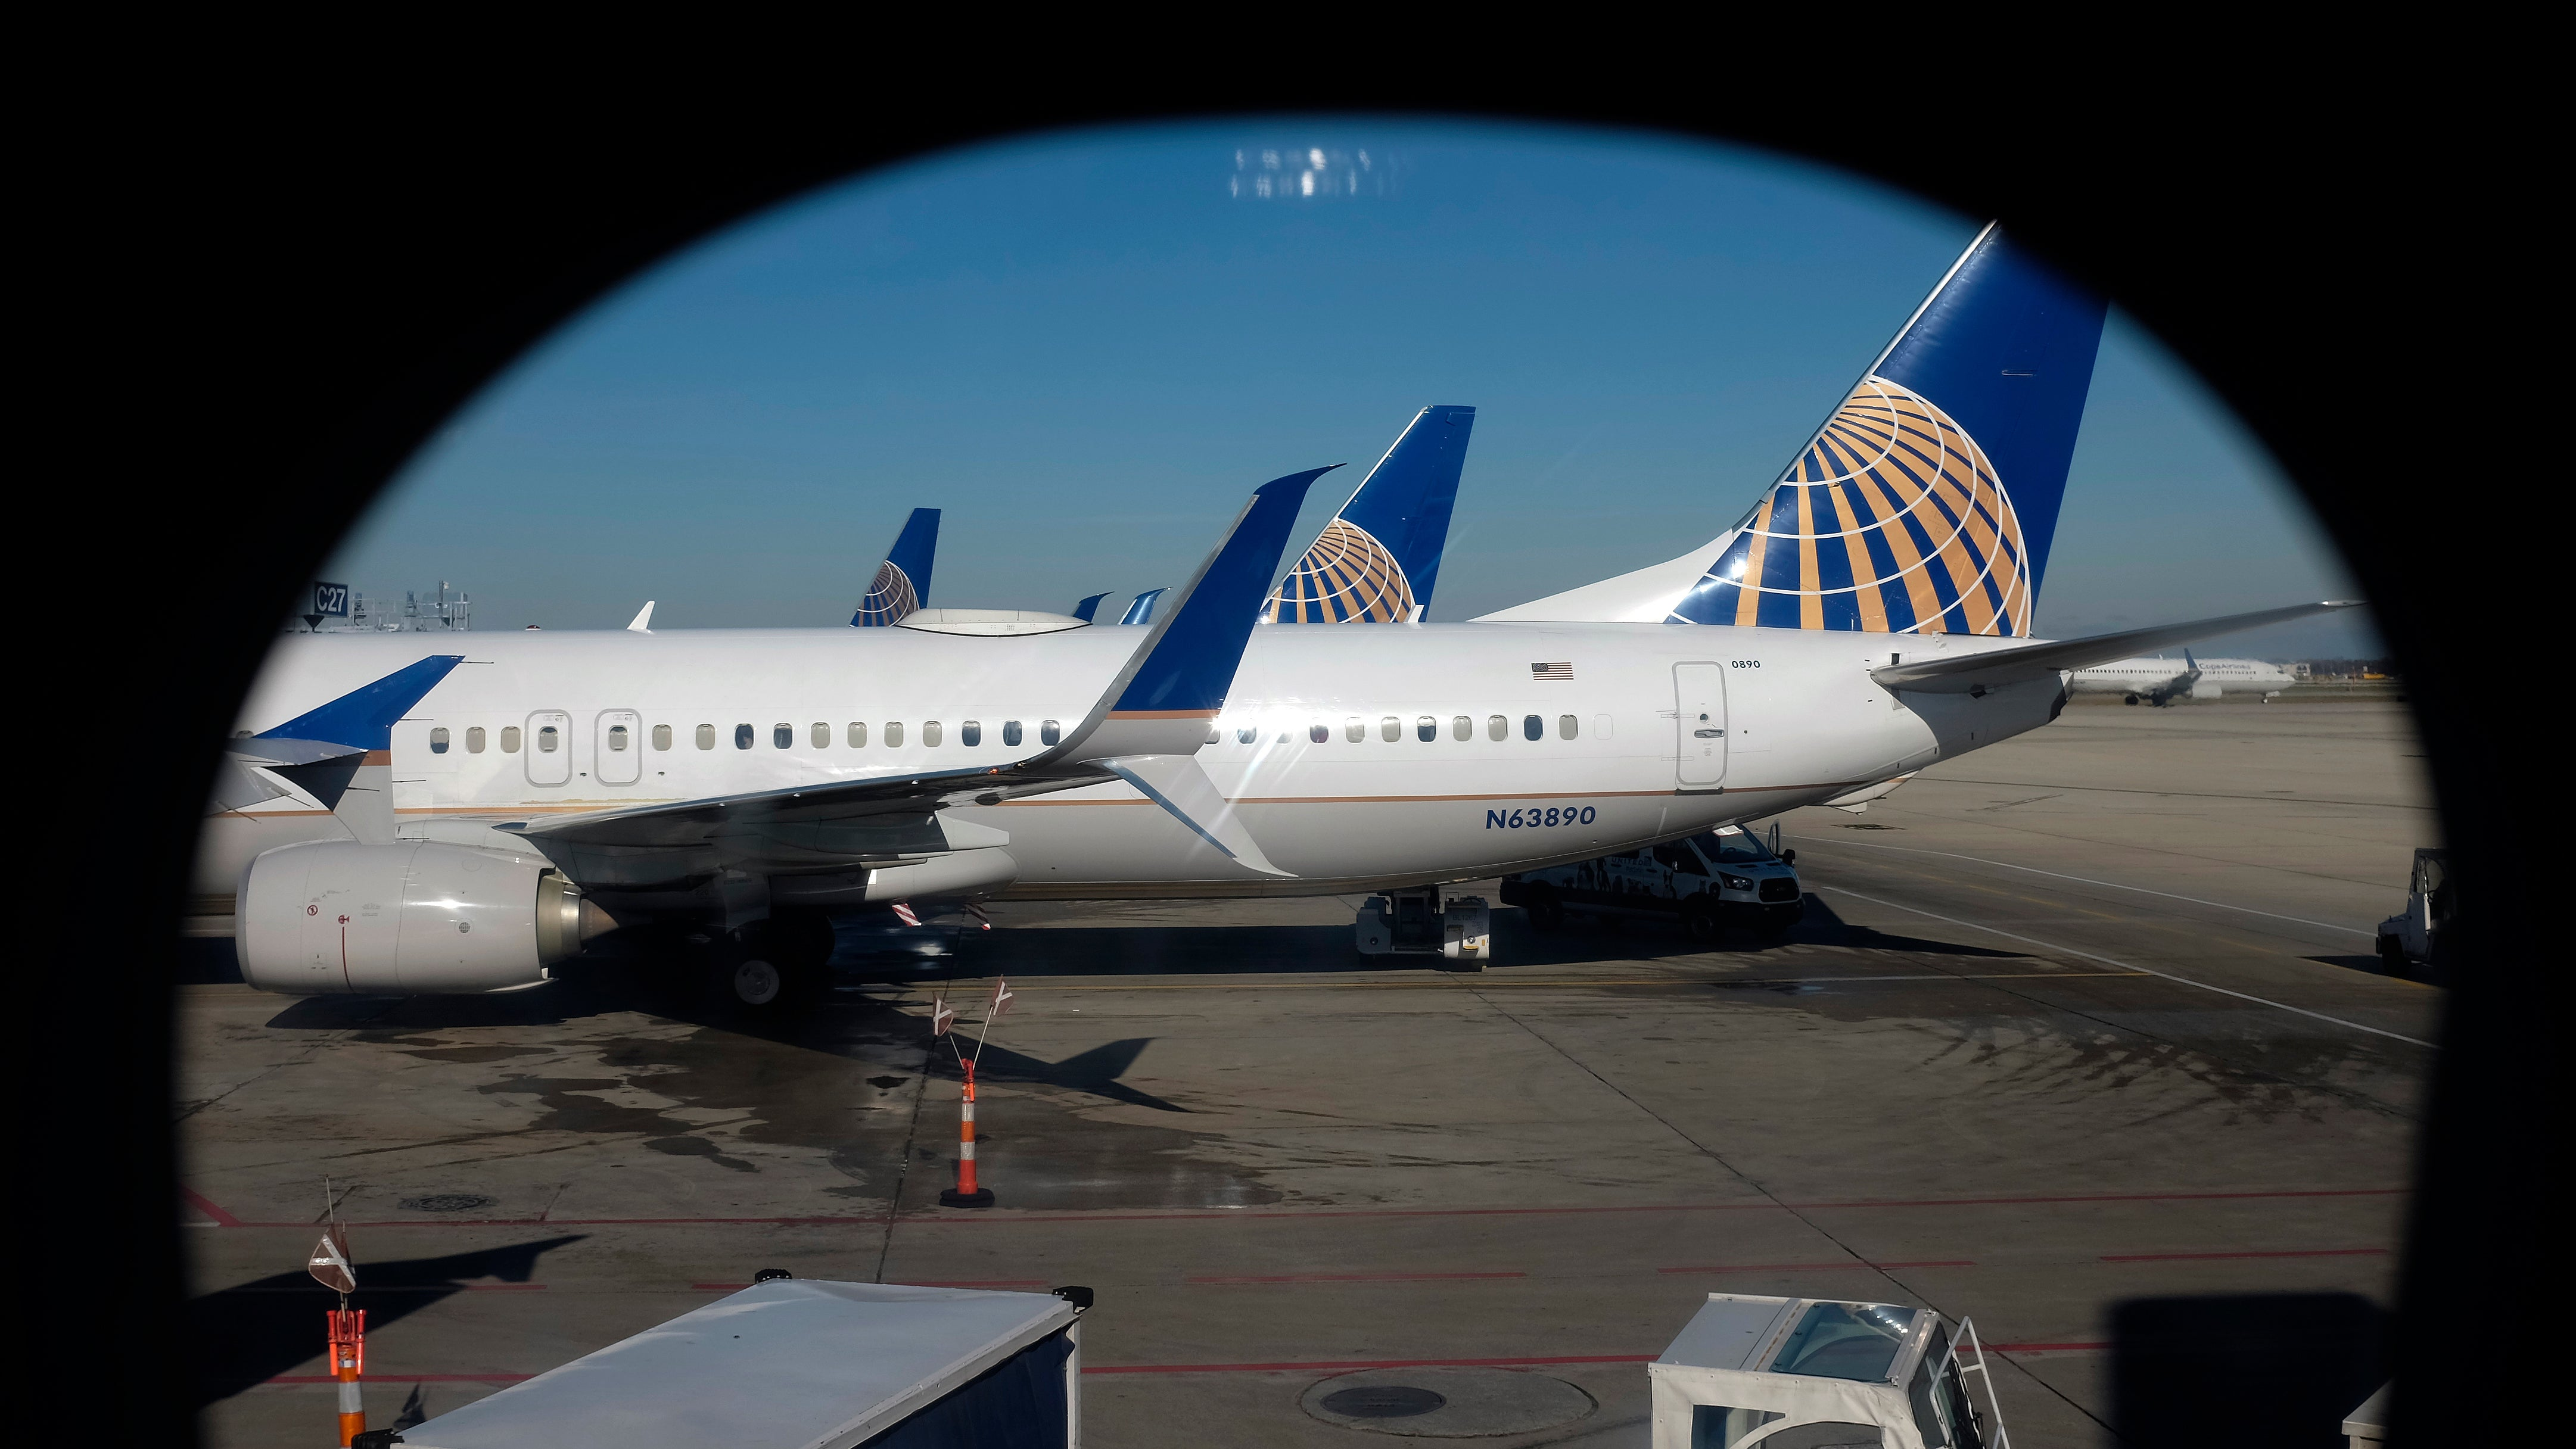 After Puppy Dies In Overhead Bin, United Airlines Mistakenly Sends Different Dog To Japan